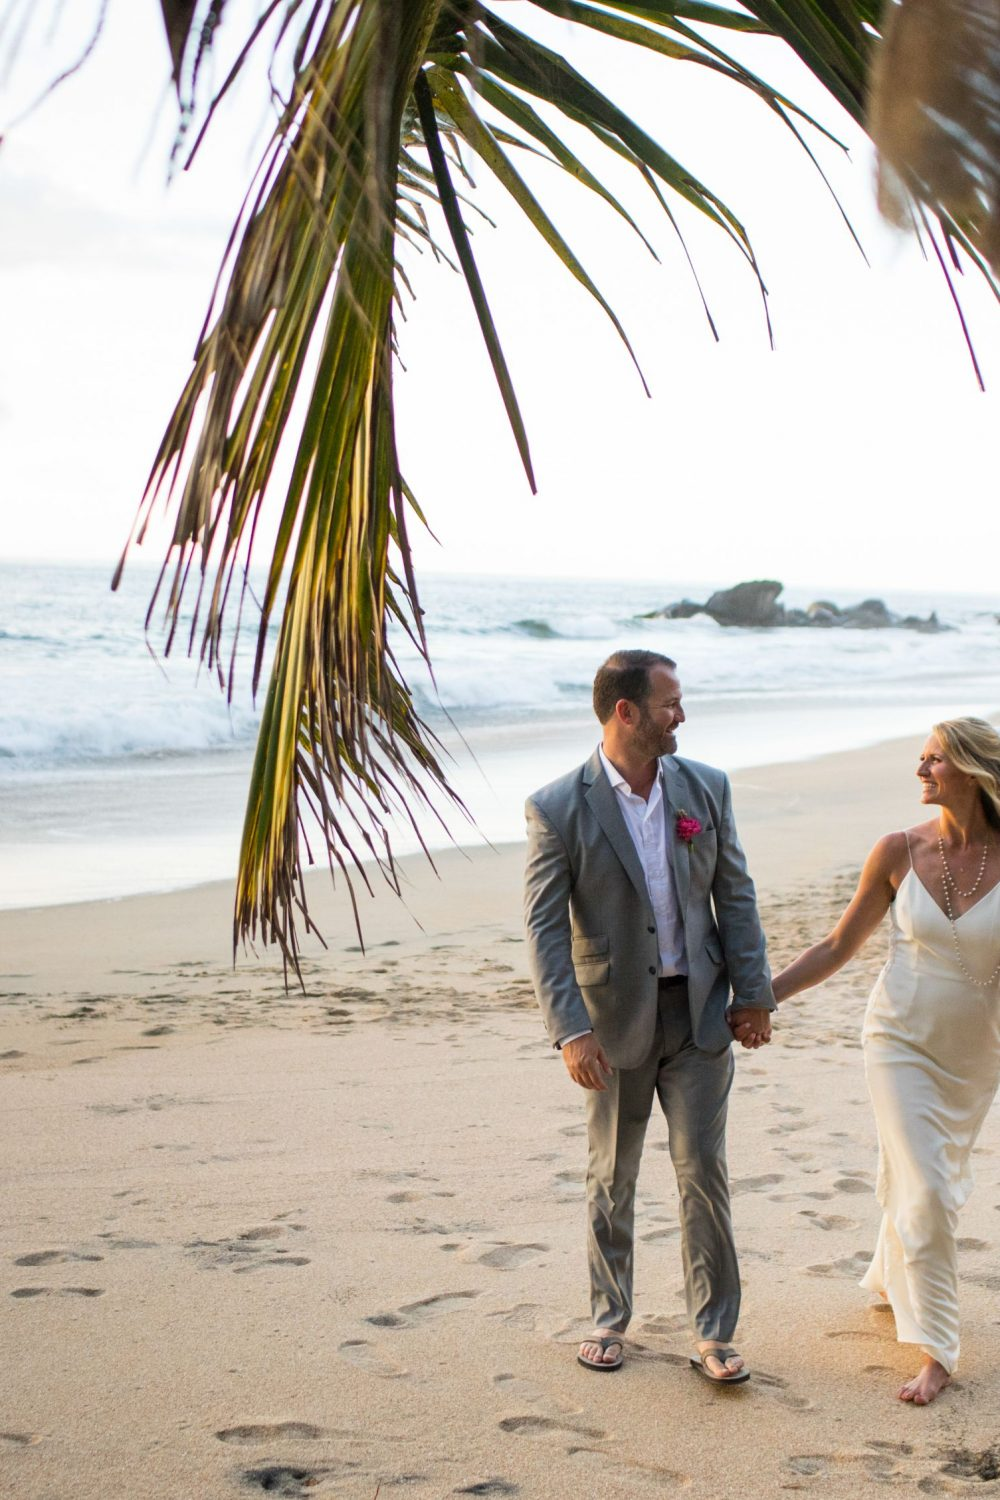 Two Marriers walking on the sandy beach of Mexico the day of their Destination Wedding